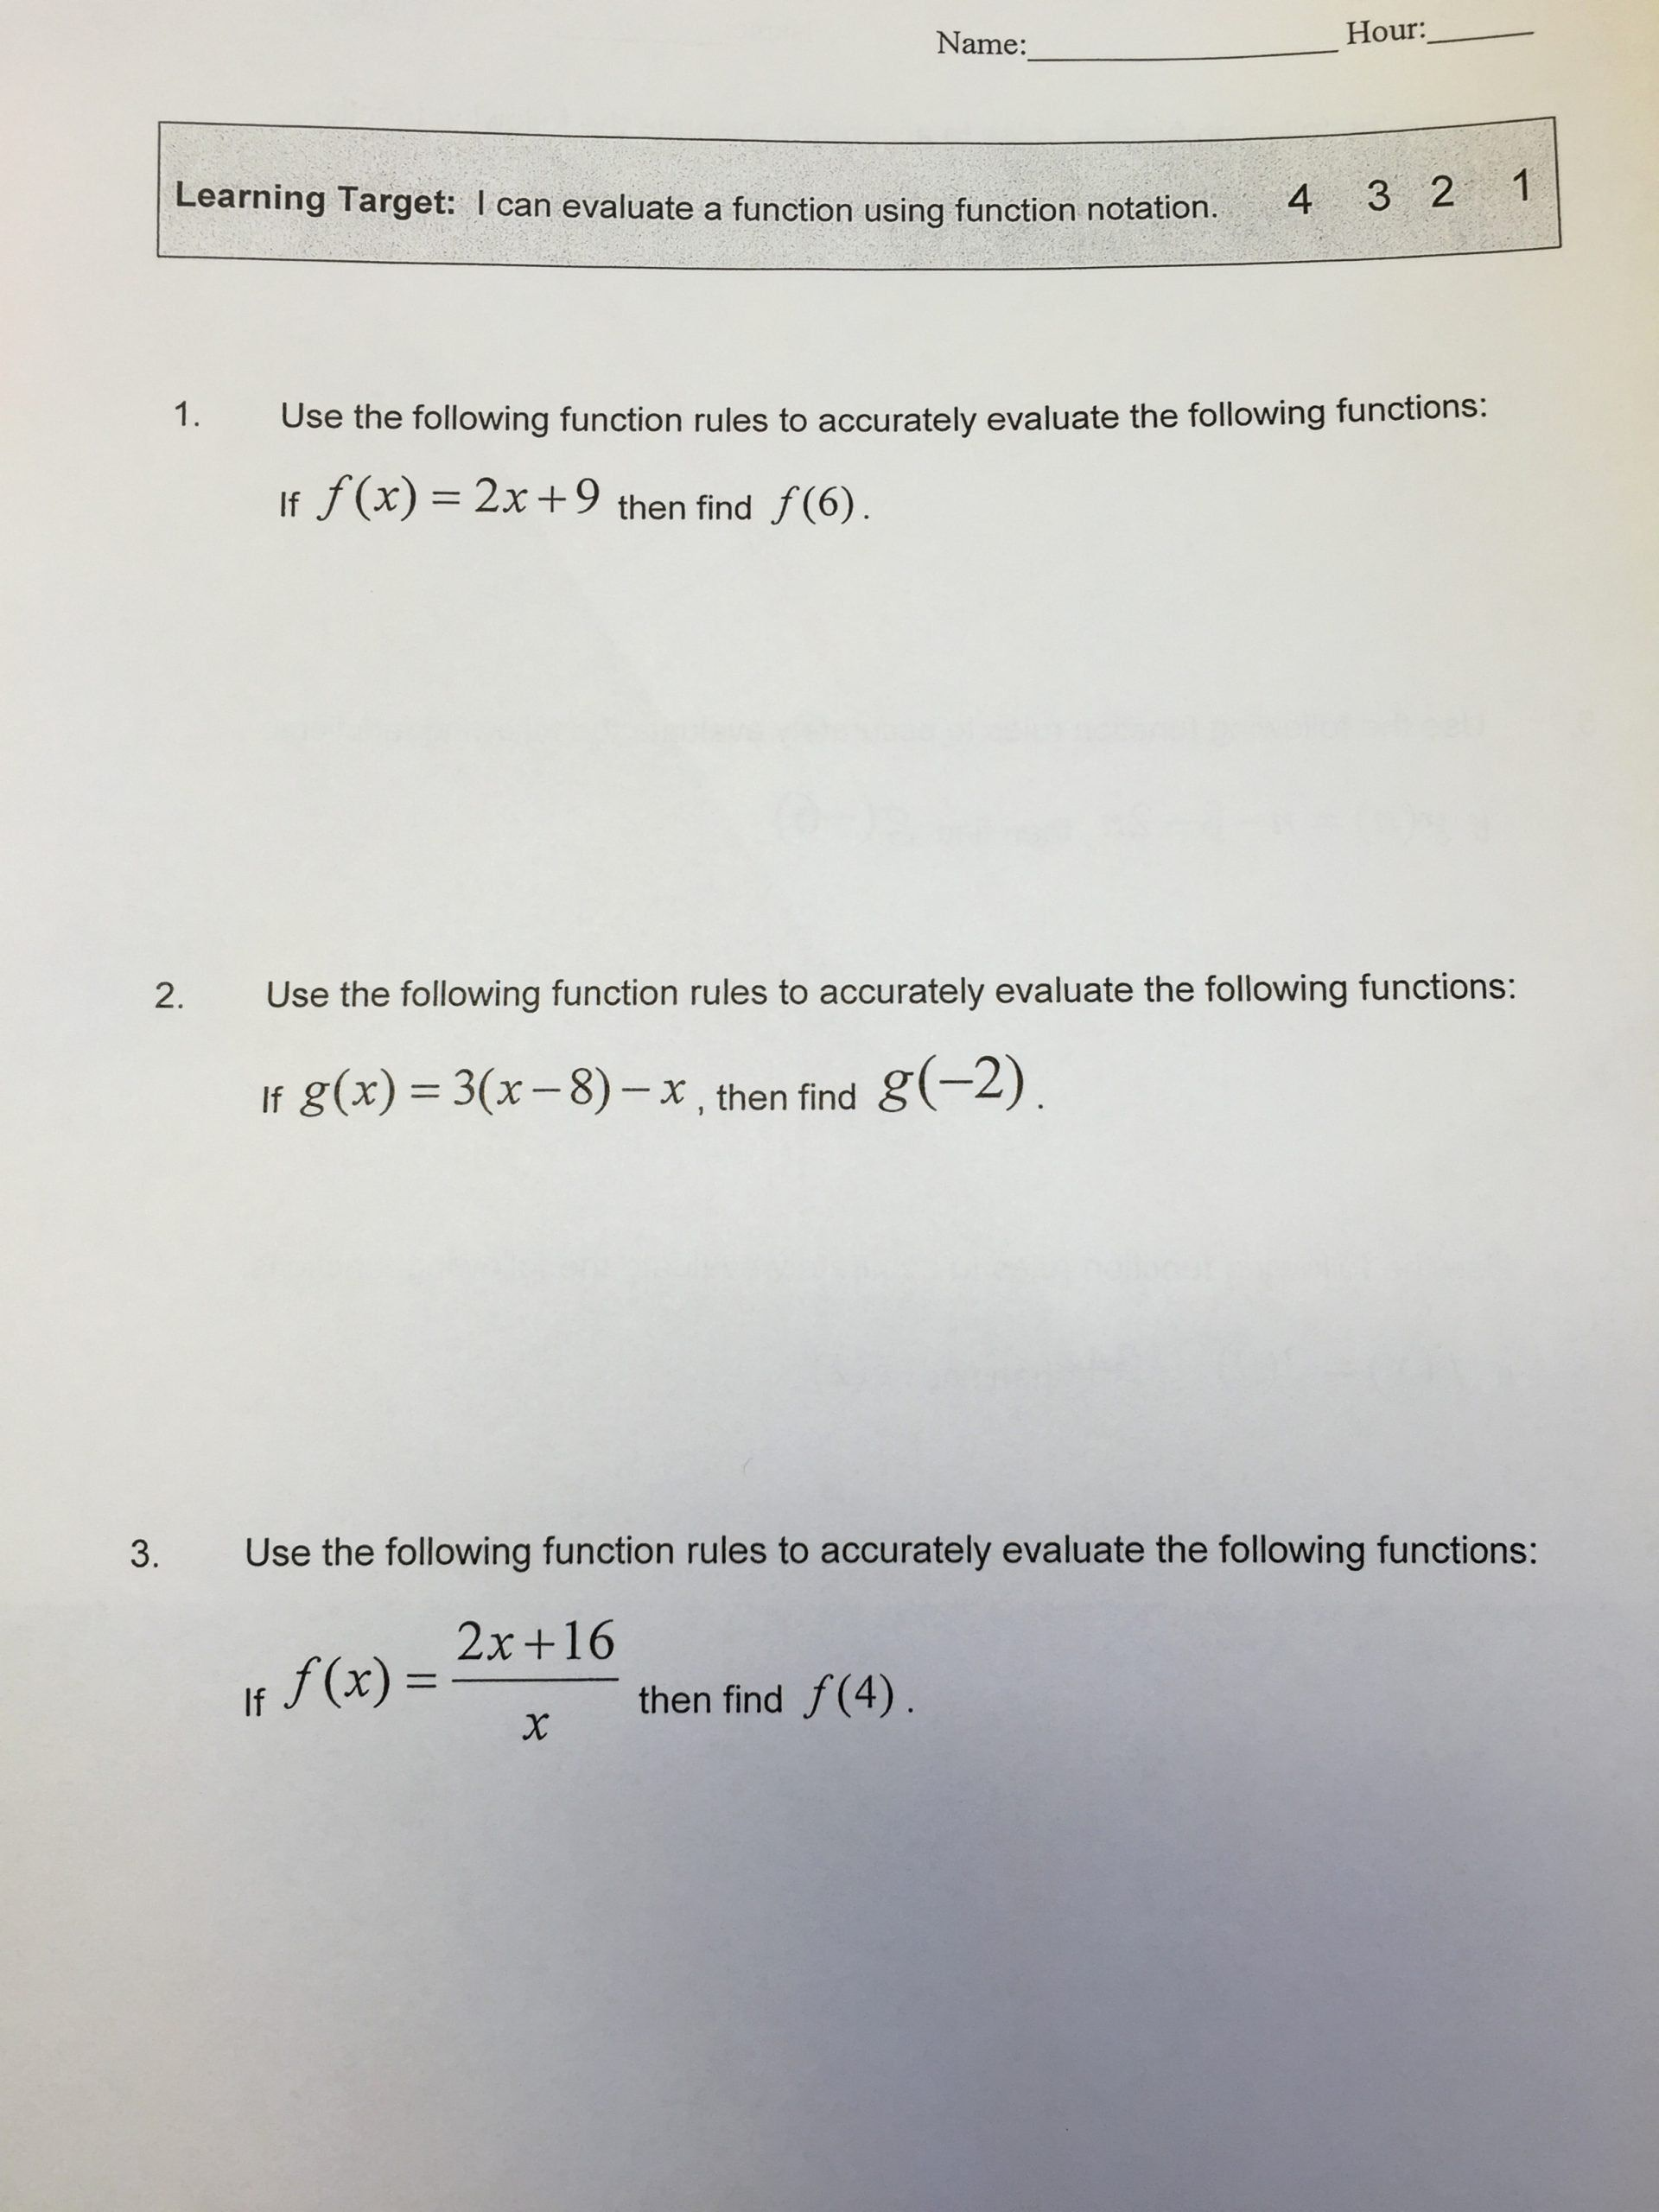 Algebra 1 Function Notation Worksheet New I Can Evaluate A